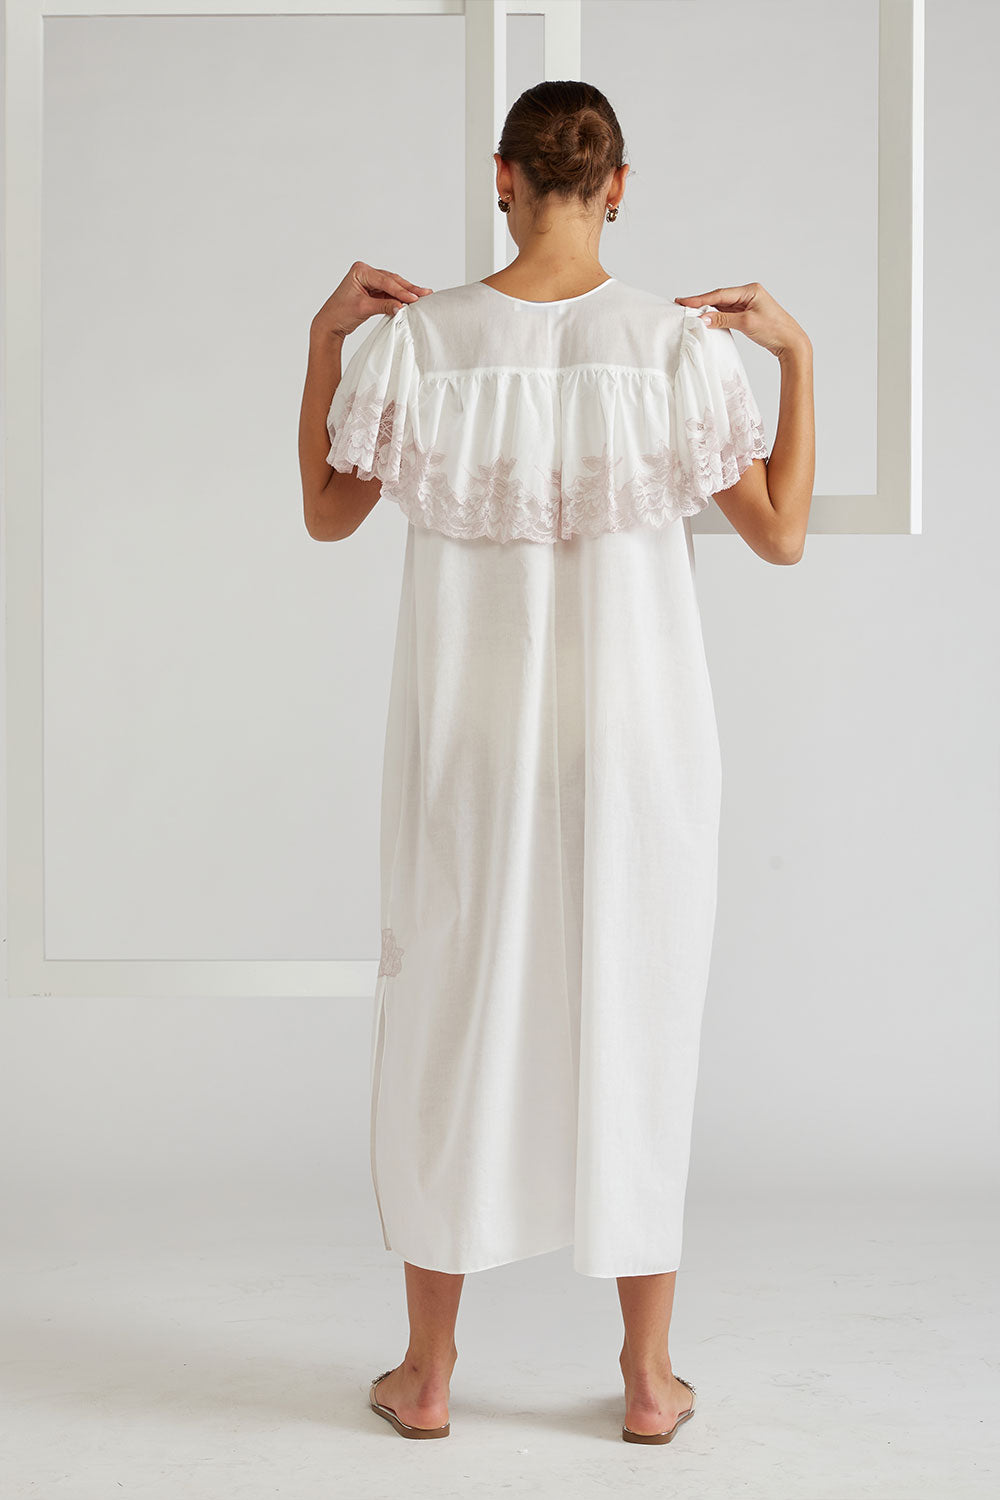 Ruffled Cotton Voile Dress - French Rose